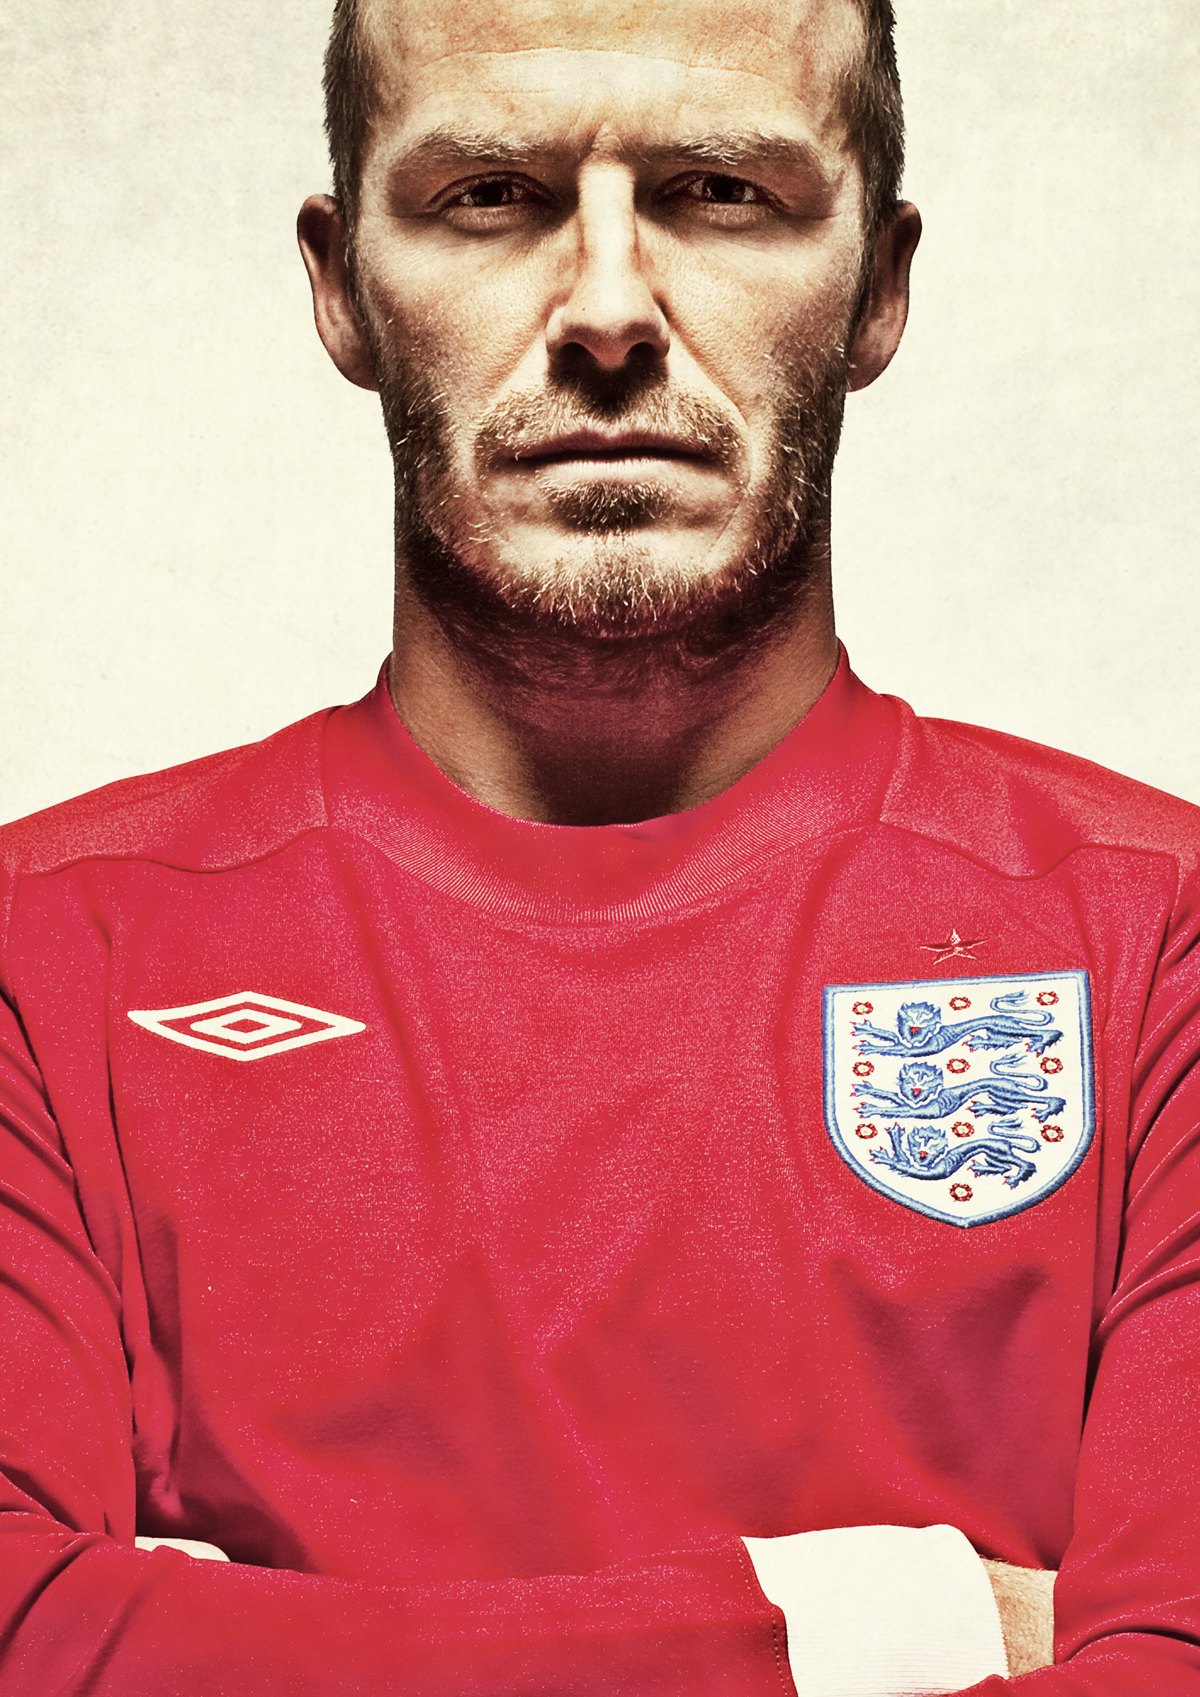 RanaldMackechnie.David Beckham. the FA.jpg